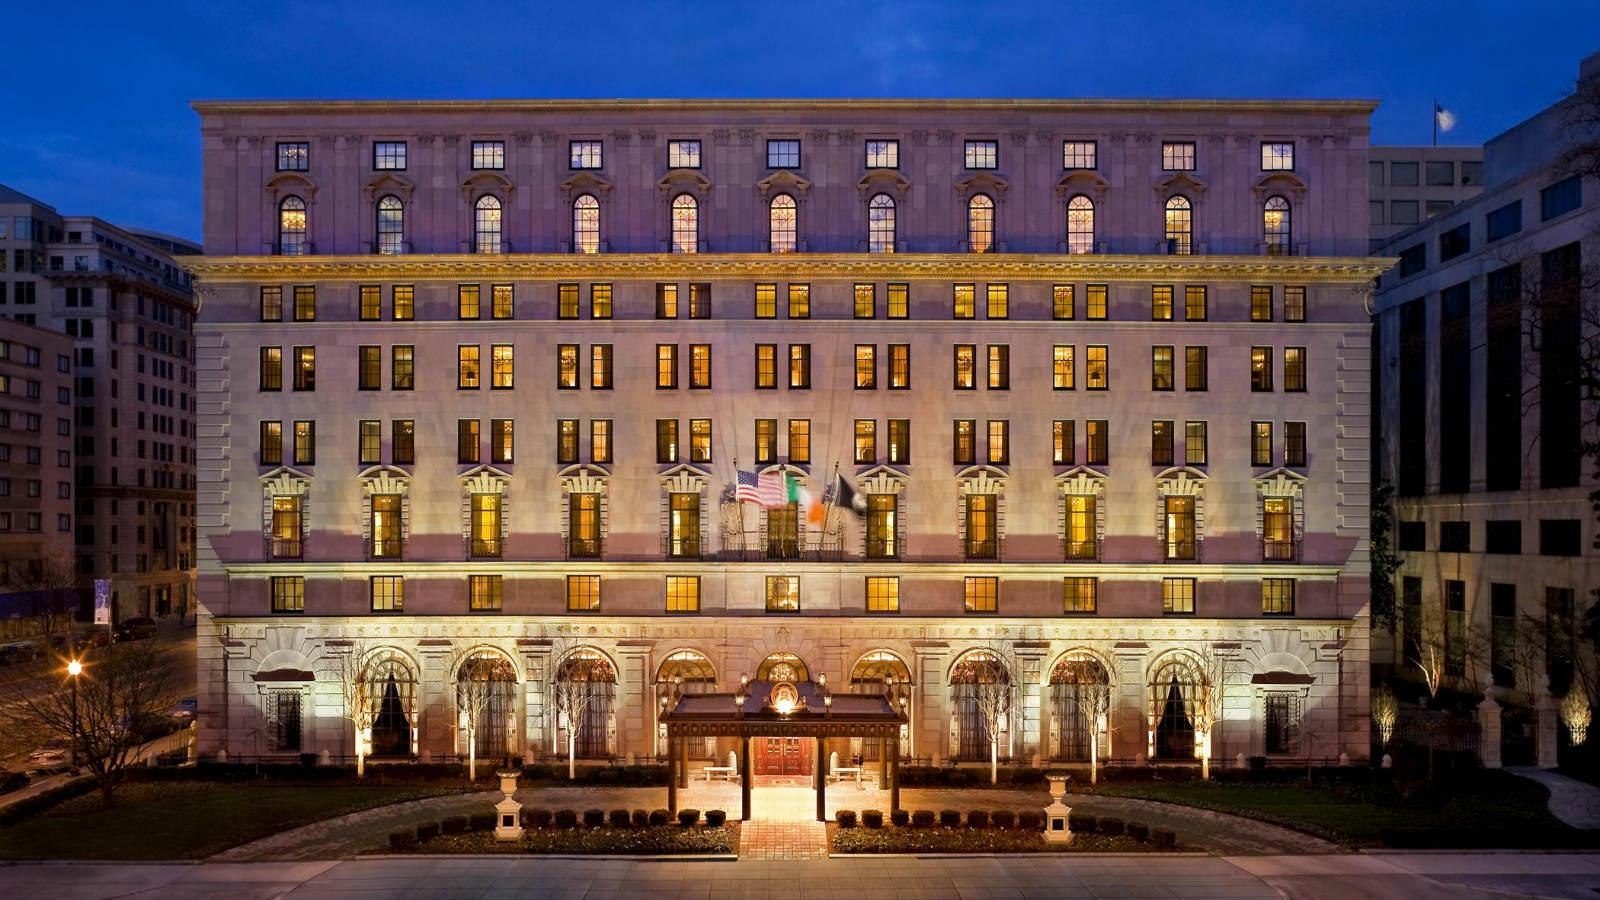 St regis hotel washington dc washington dc district of for St regis